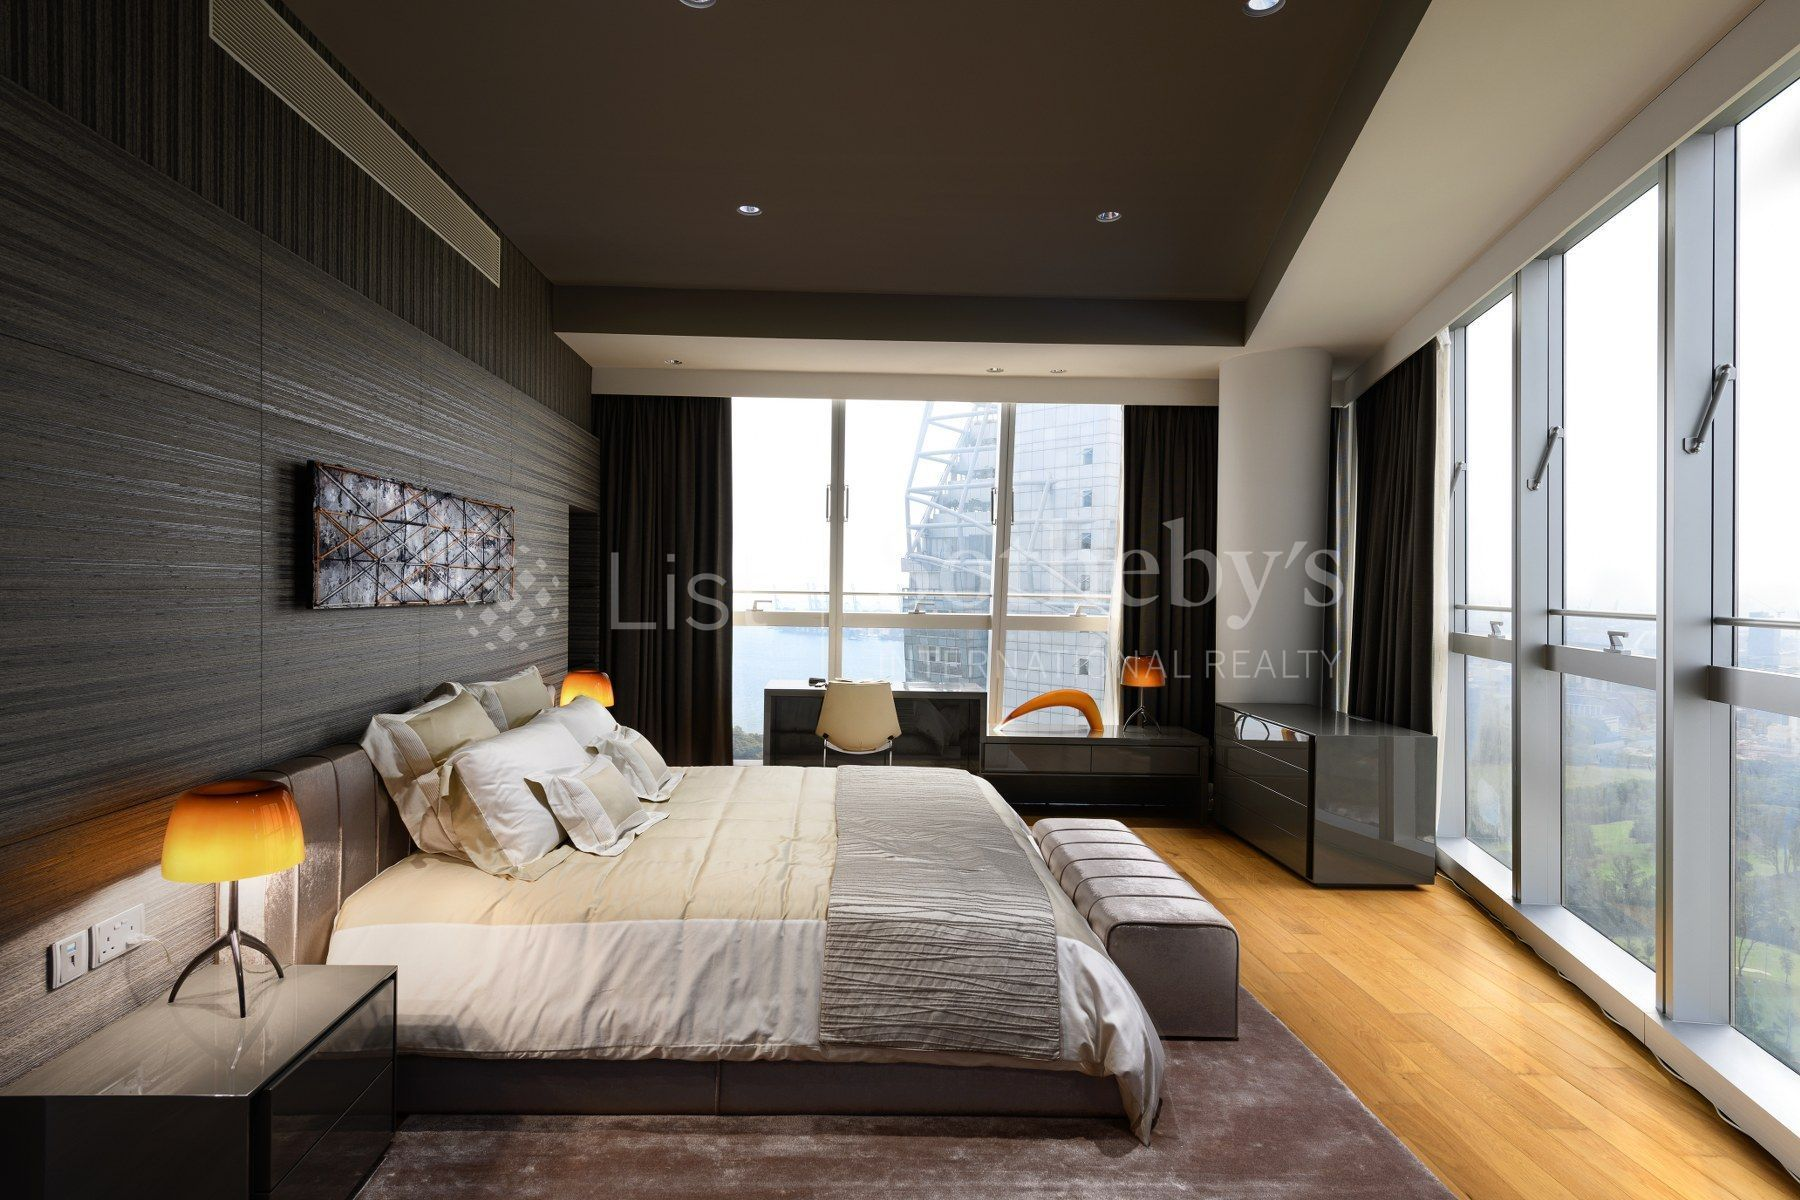 Additional photo for property listing at Reflections at Keppel Bay Super Penthouse 1 Keppel Bay View Singapore, Các Thành Phố Ở Singapore 098417 Singapore